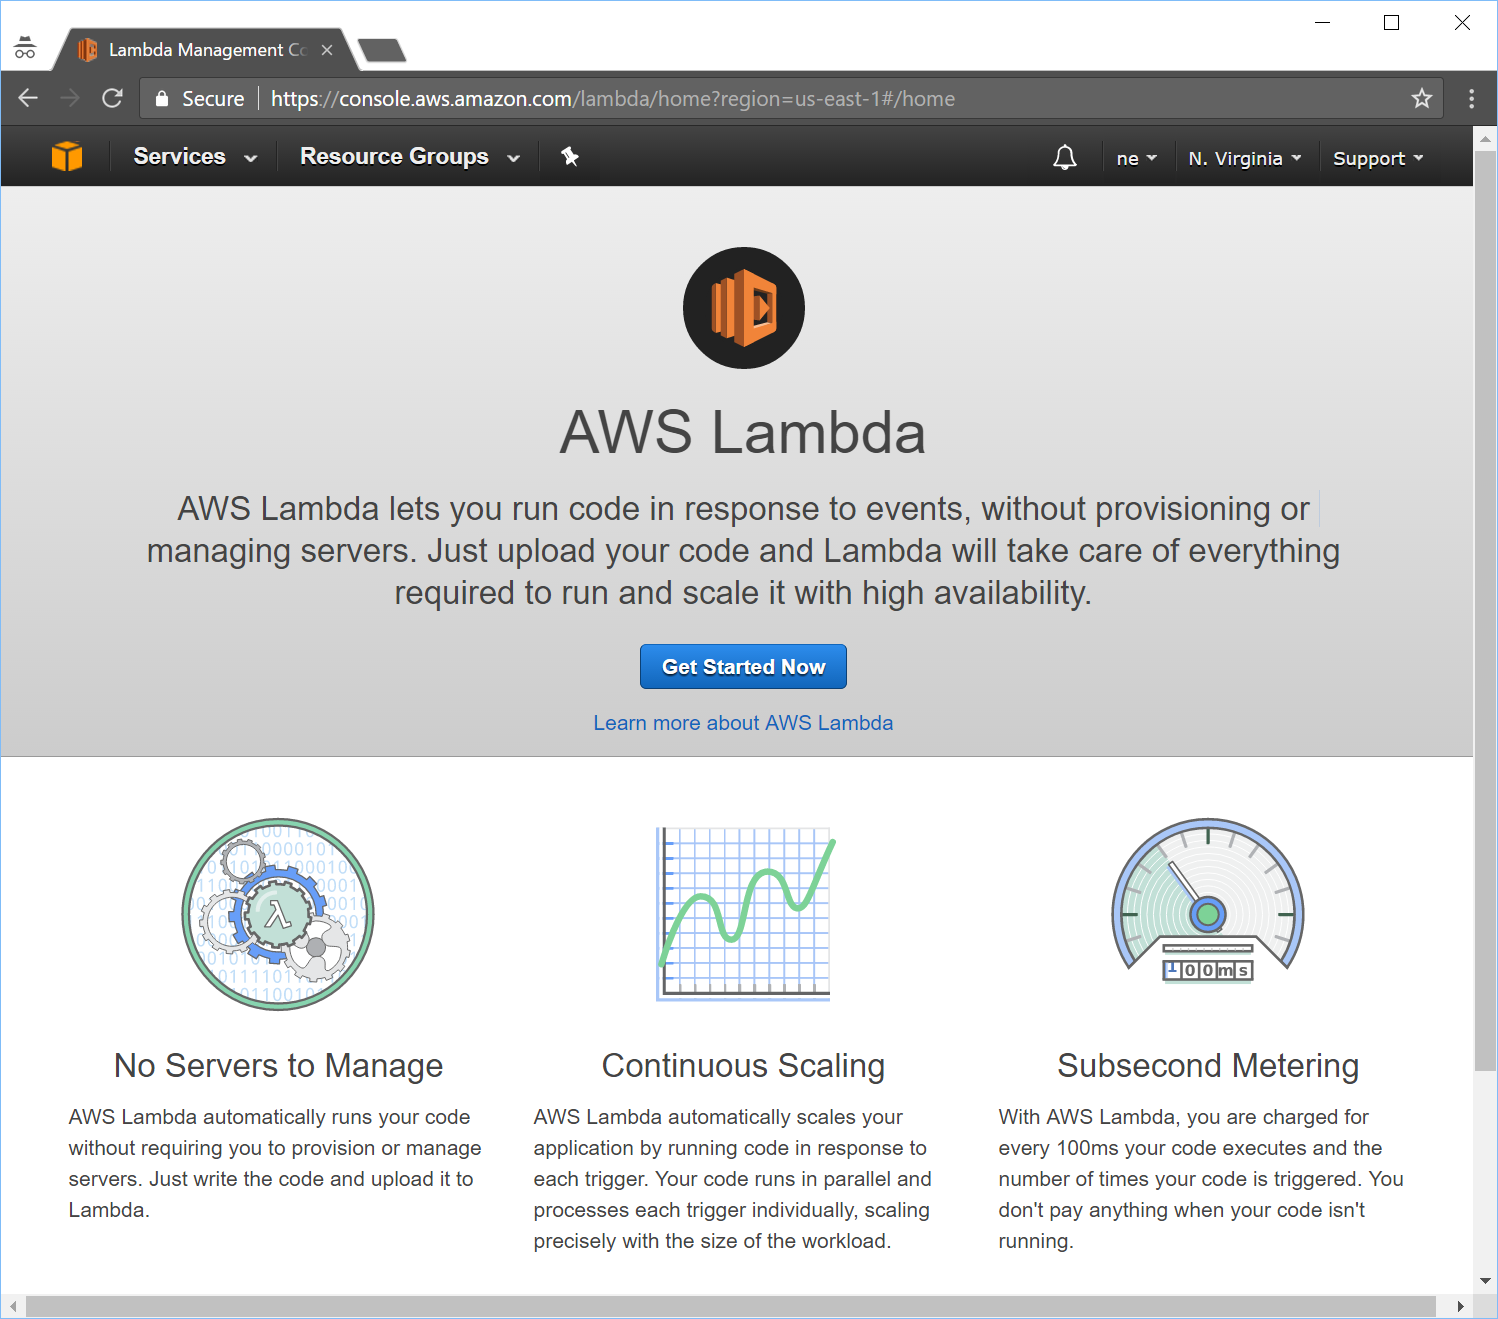 Tutorial using mturk together with aws lambda happenings at mturk click to get started and youll be taken to a page to select an aws lambda blueprint blueprints are simply starting points you can use to get going faster malvernweather Images